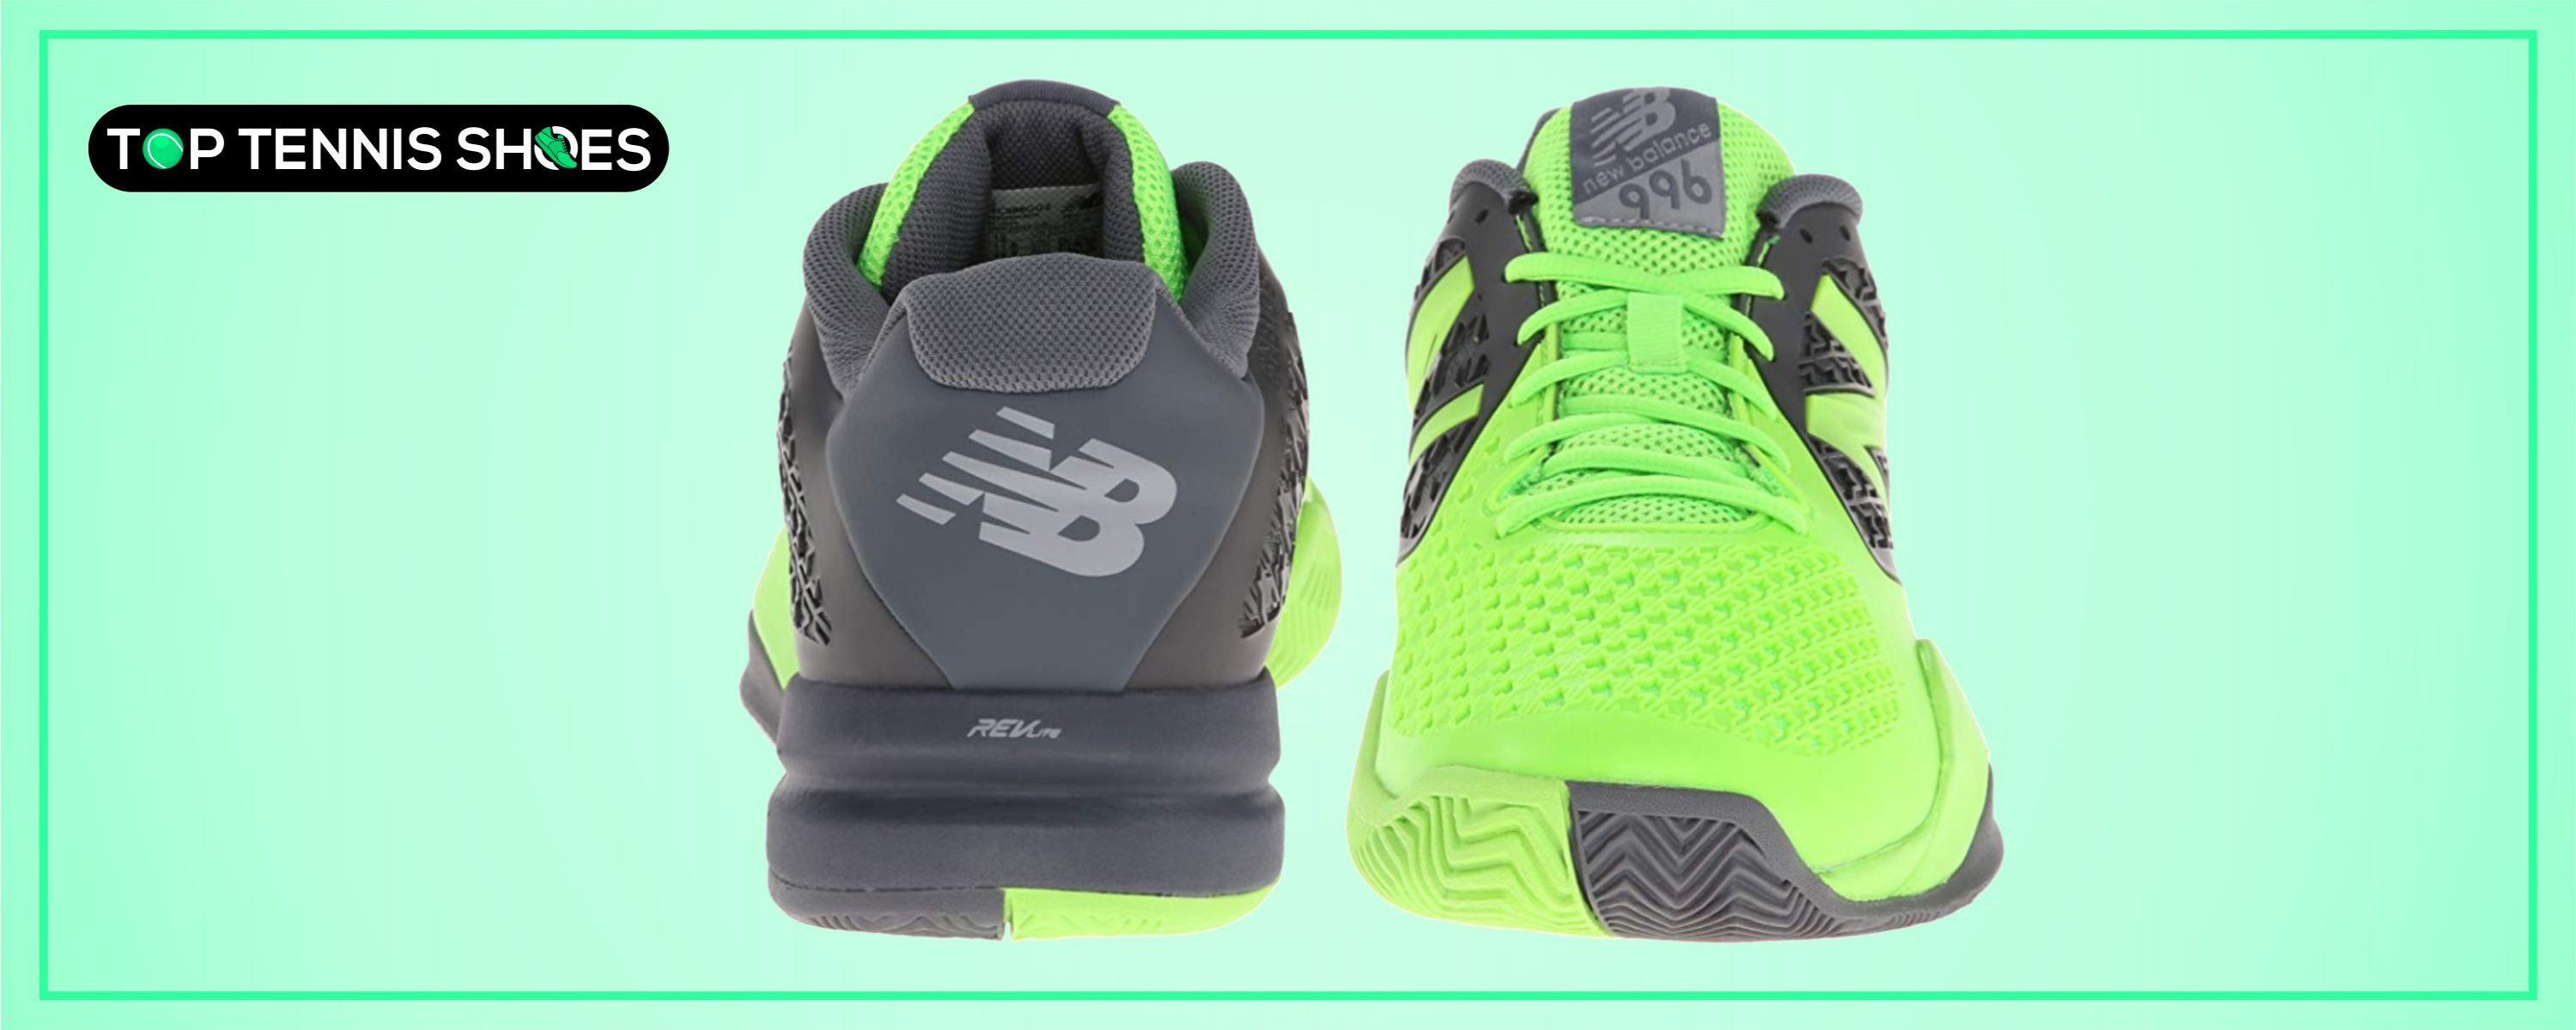 best tennis shoes for heavy players 2019